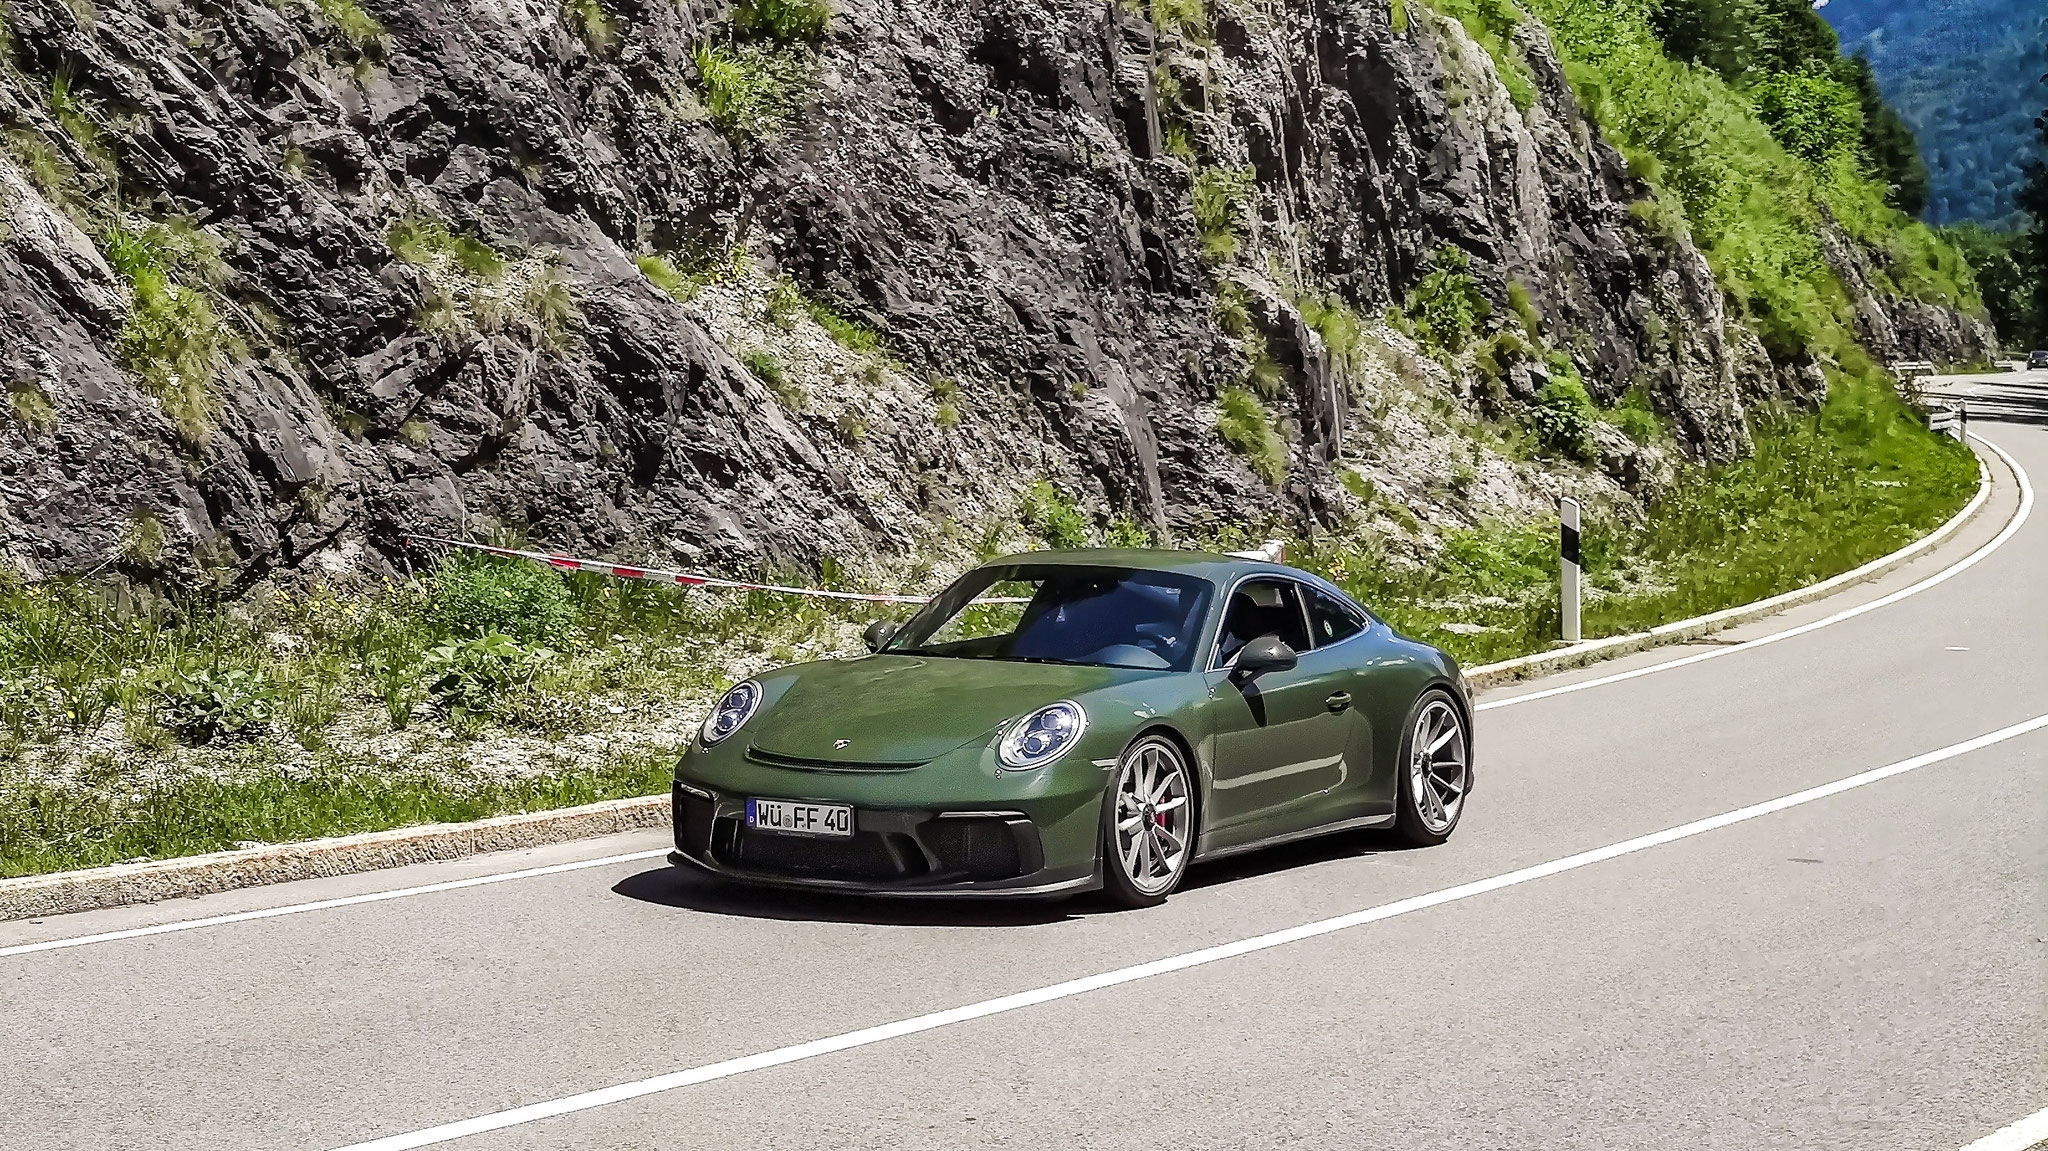 Porsche 991 GT3 Touring Package - WÜ-FF-40